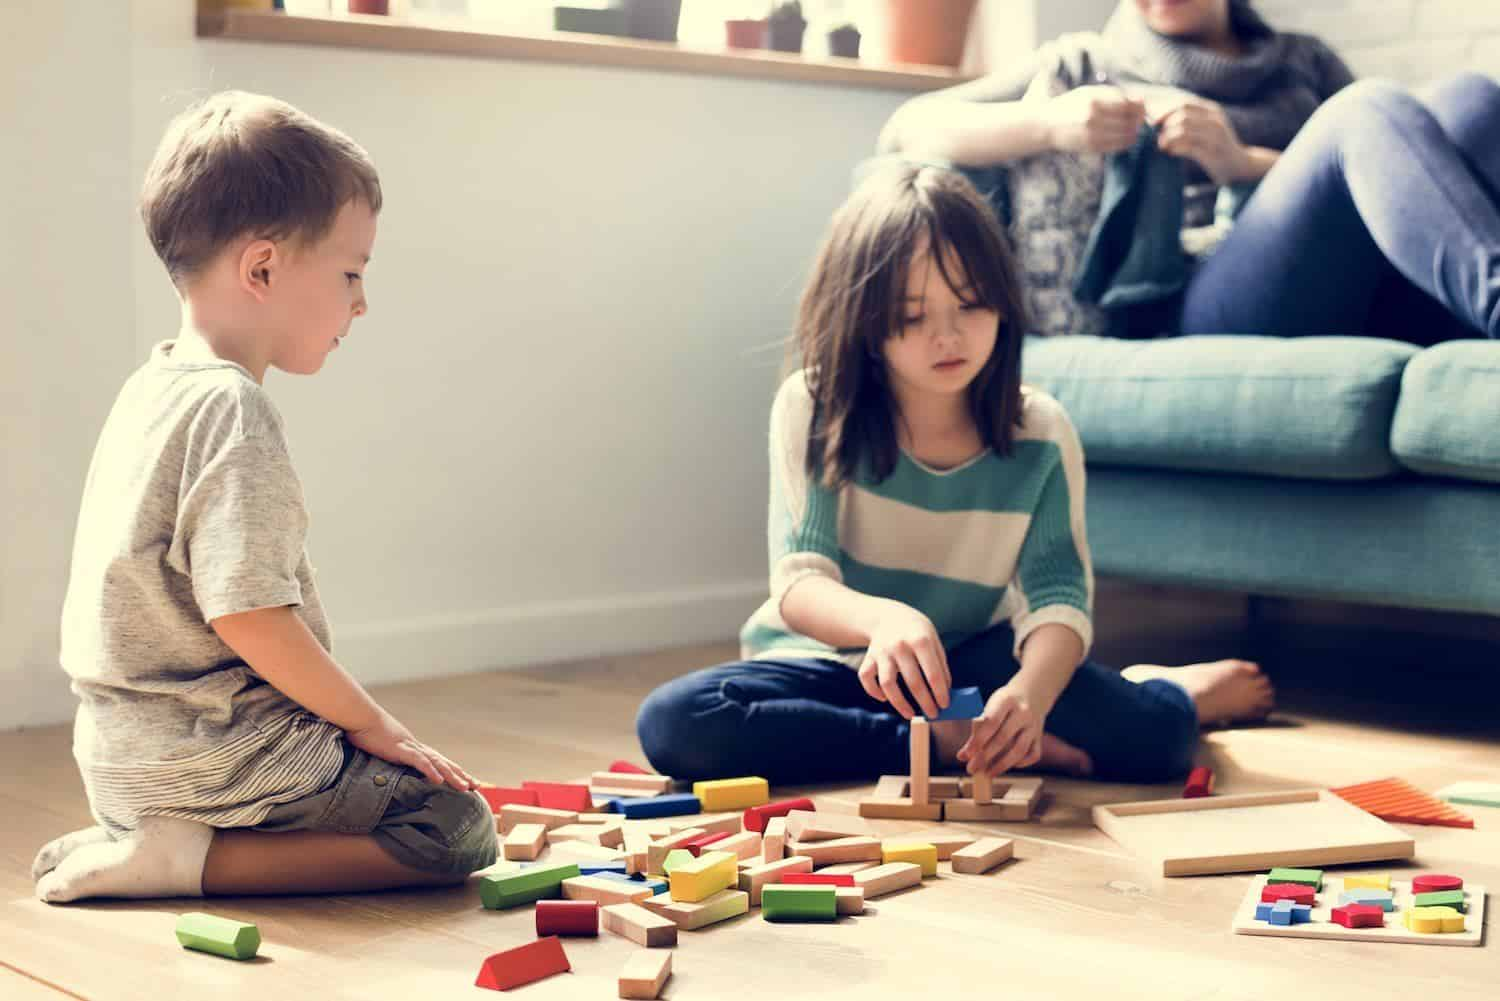 Teaching math to kids: Children playing with blocks on the floor